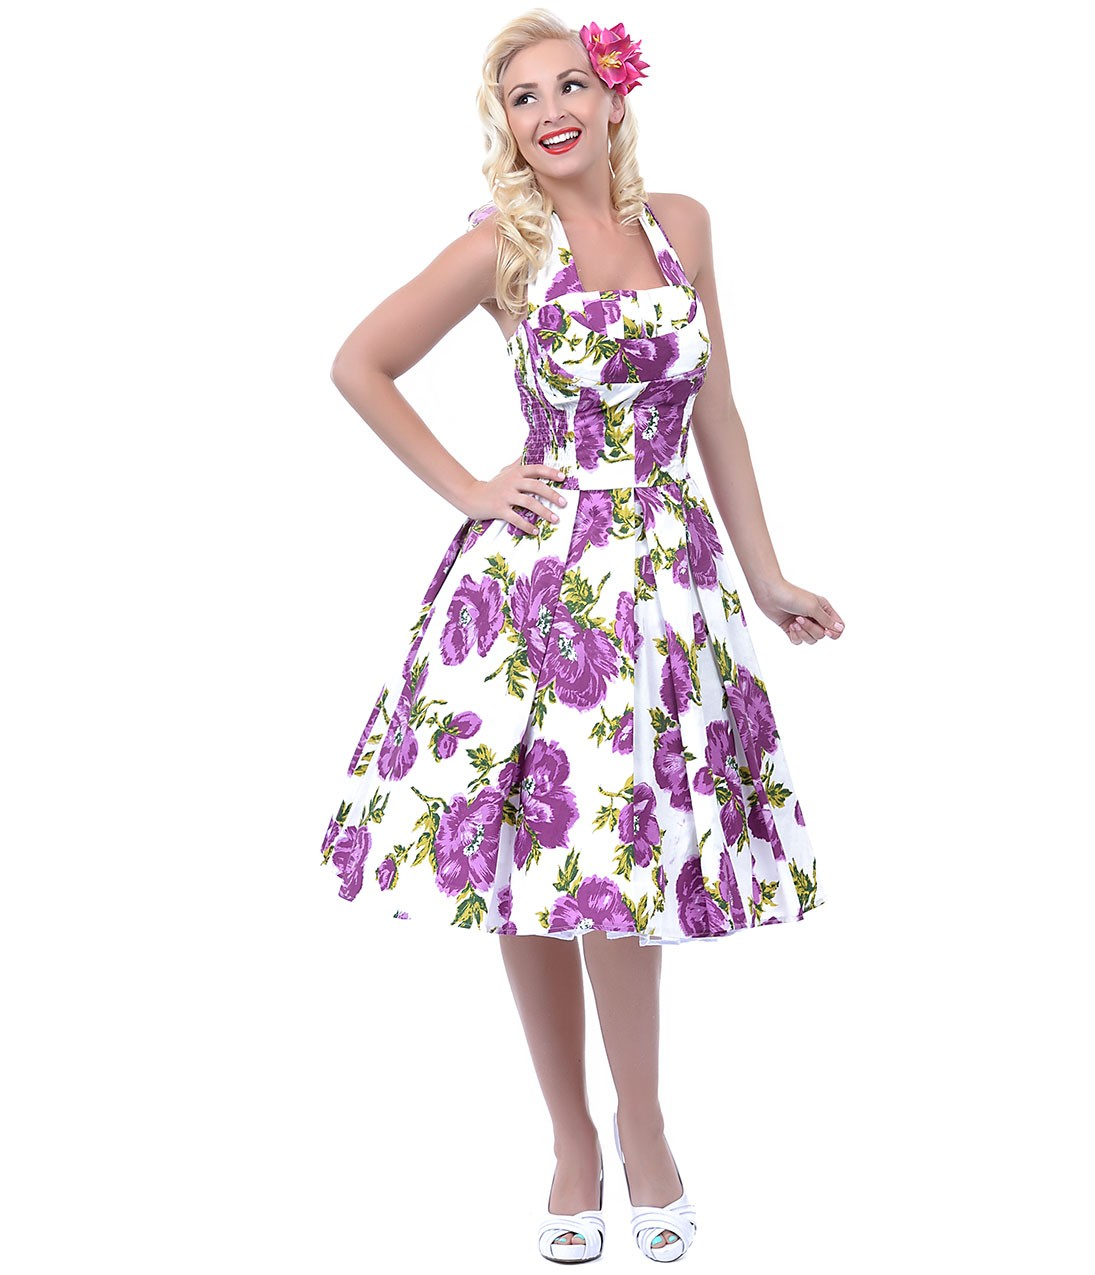 Unique Vintage Purple & White Floral Cotton Flirty Swing Dress